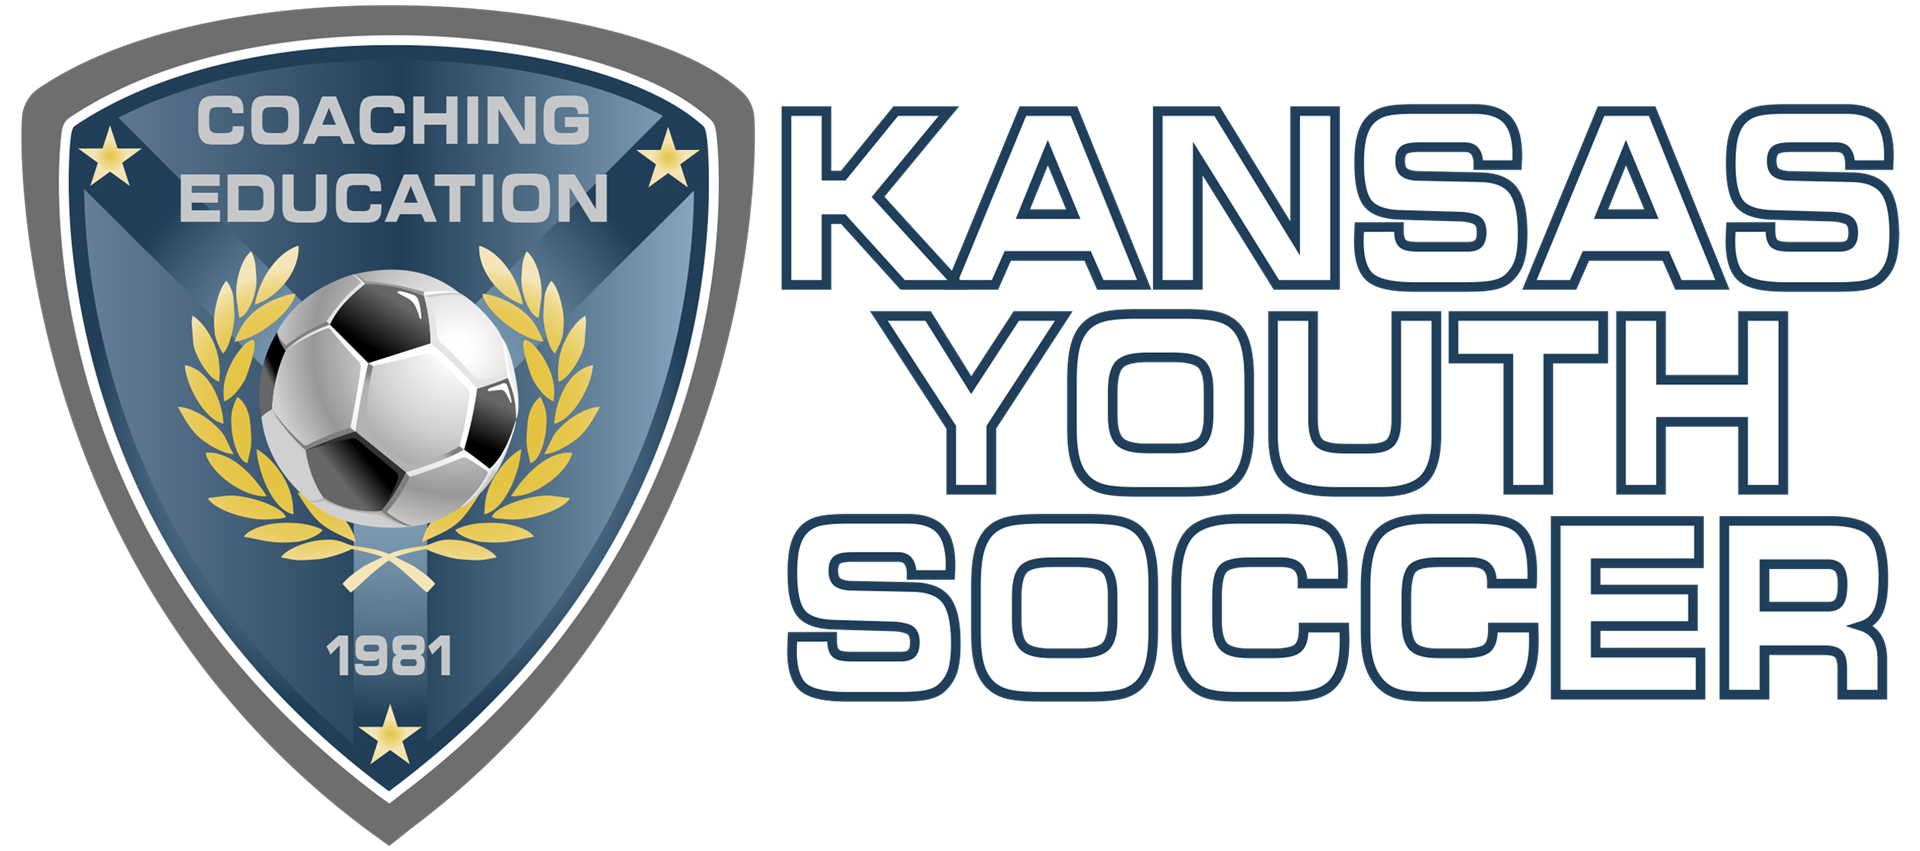 Kansas_Youth_Soccer_white_blue_outline_Coaching_Ed_V3